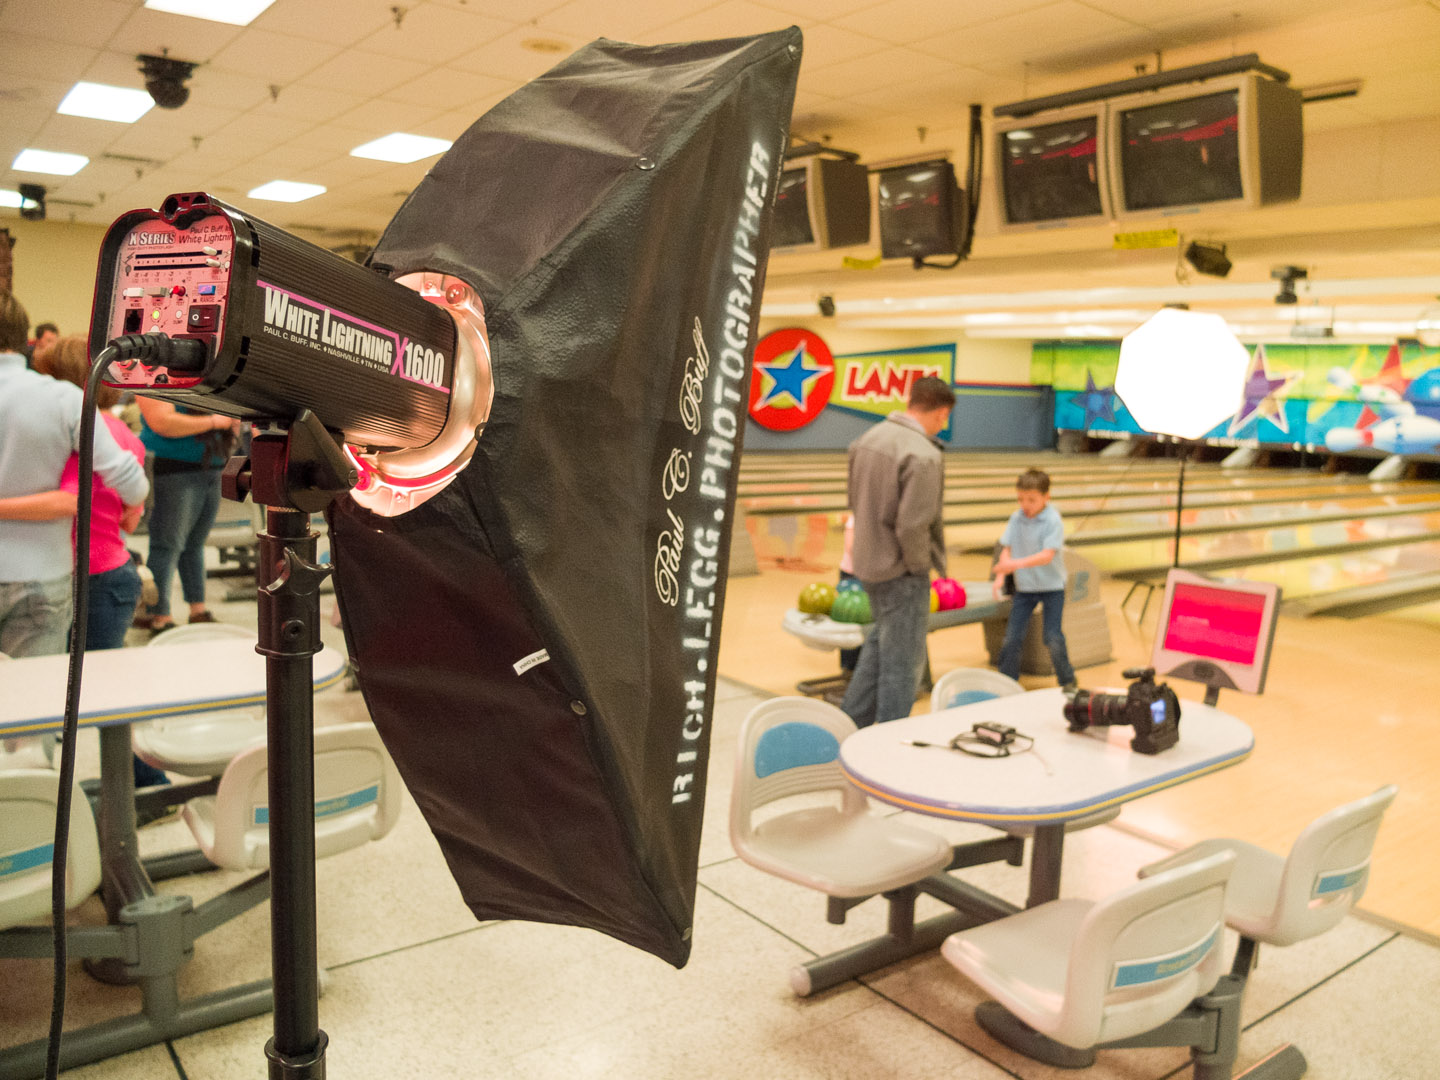 Lighting a bowling photo shoot